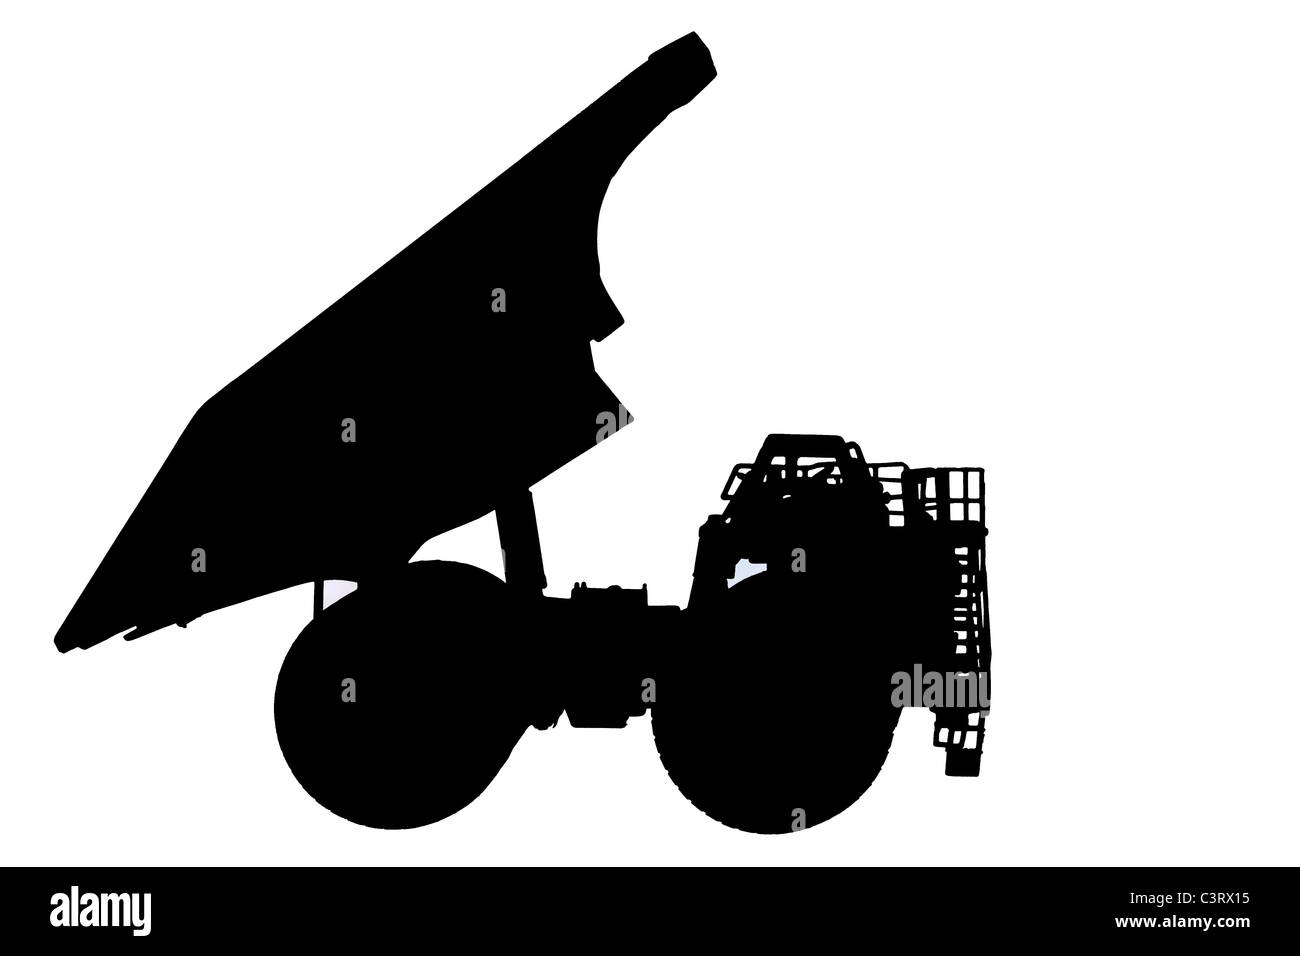 Silhouette of Caterpillar 793D Haul truck - Stock Image